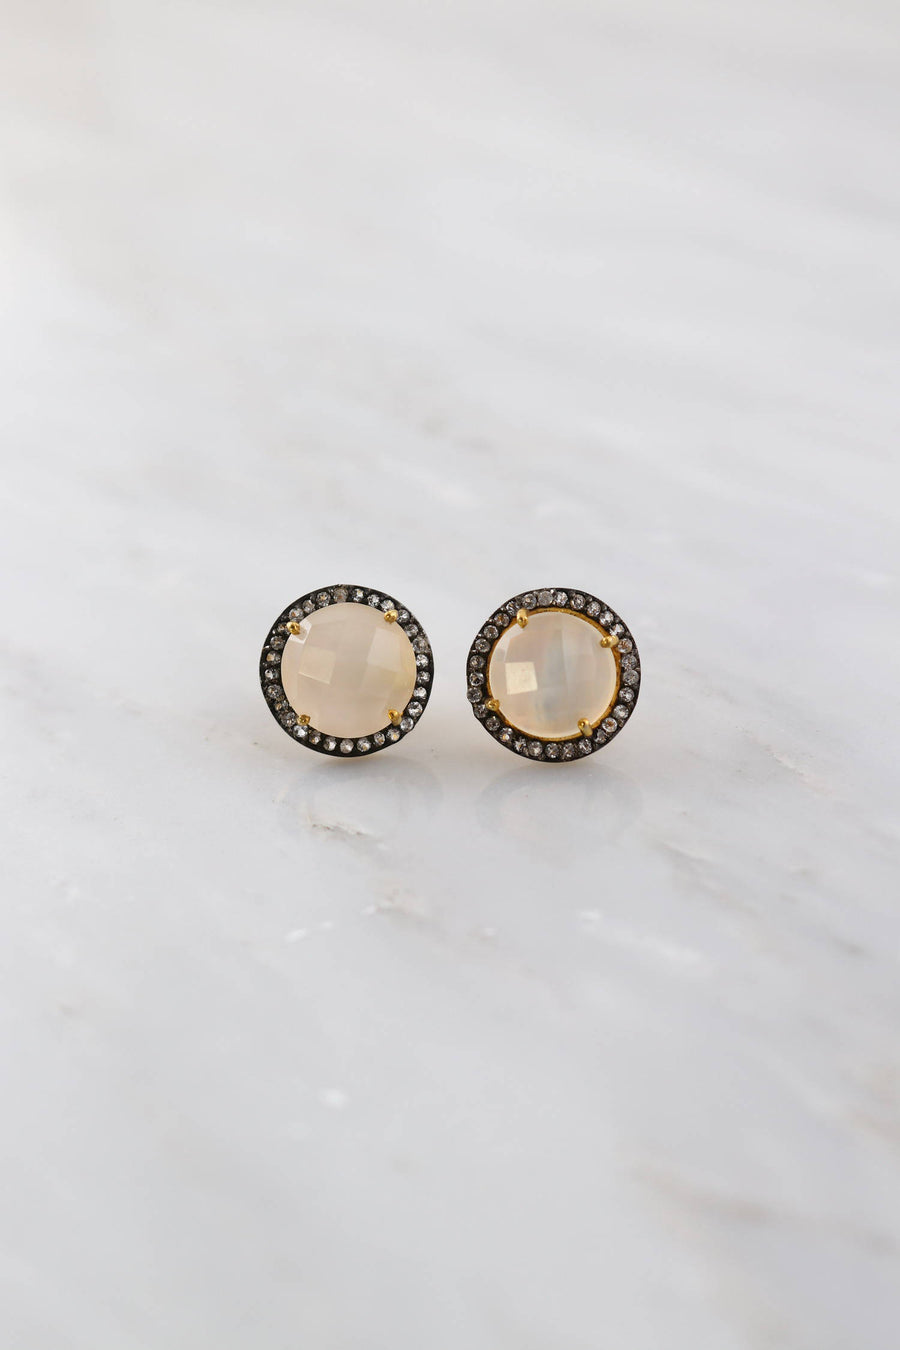 Chalcedony Studs Earring, Simple Post Studs, Oxidized Studs, Gold Studs Earring, Topaz Studs, Bridesmaid Gift, Gift for her, Designer Studs